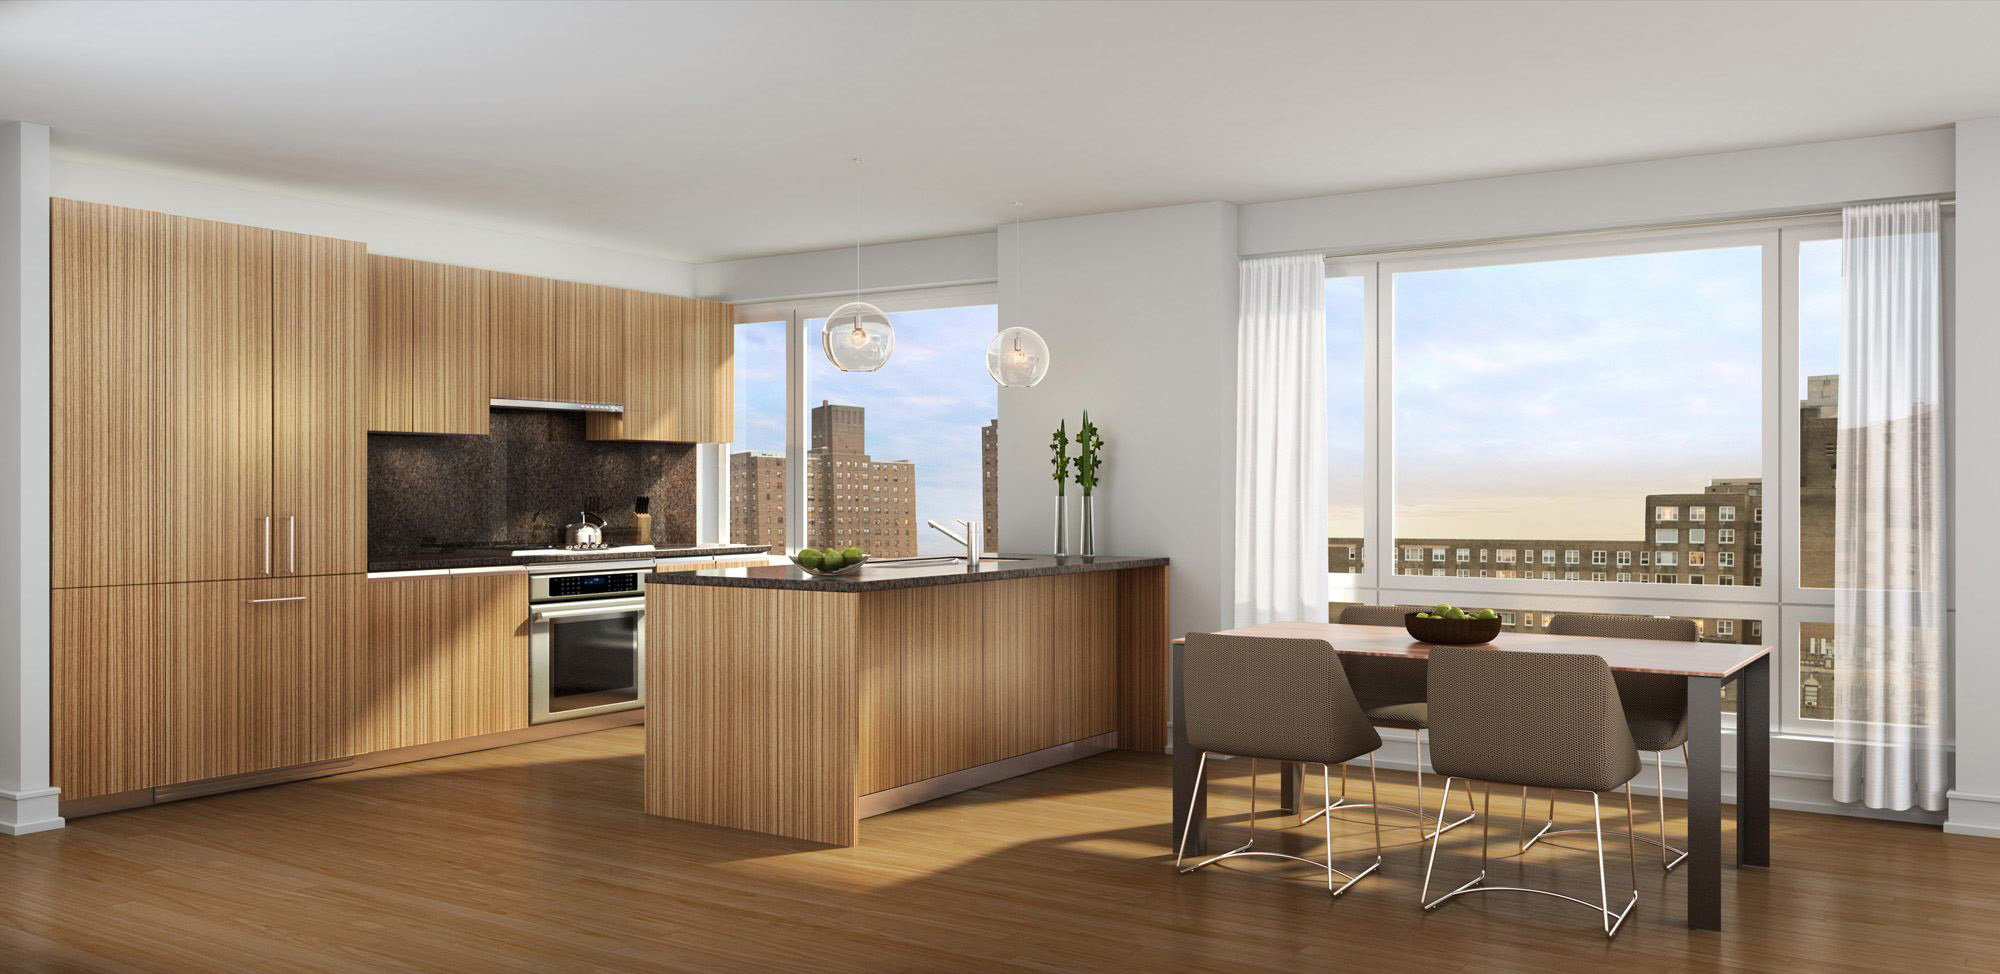 1280 Fifth Avenue Residential Tower Interiors